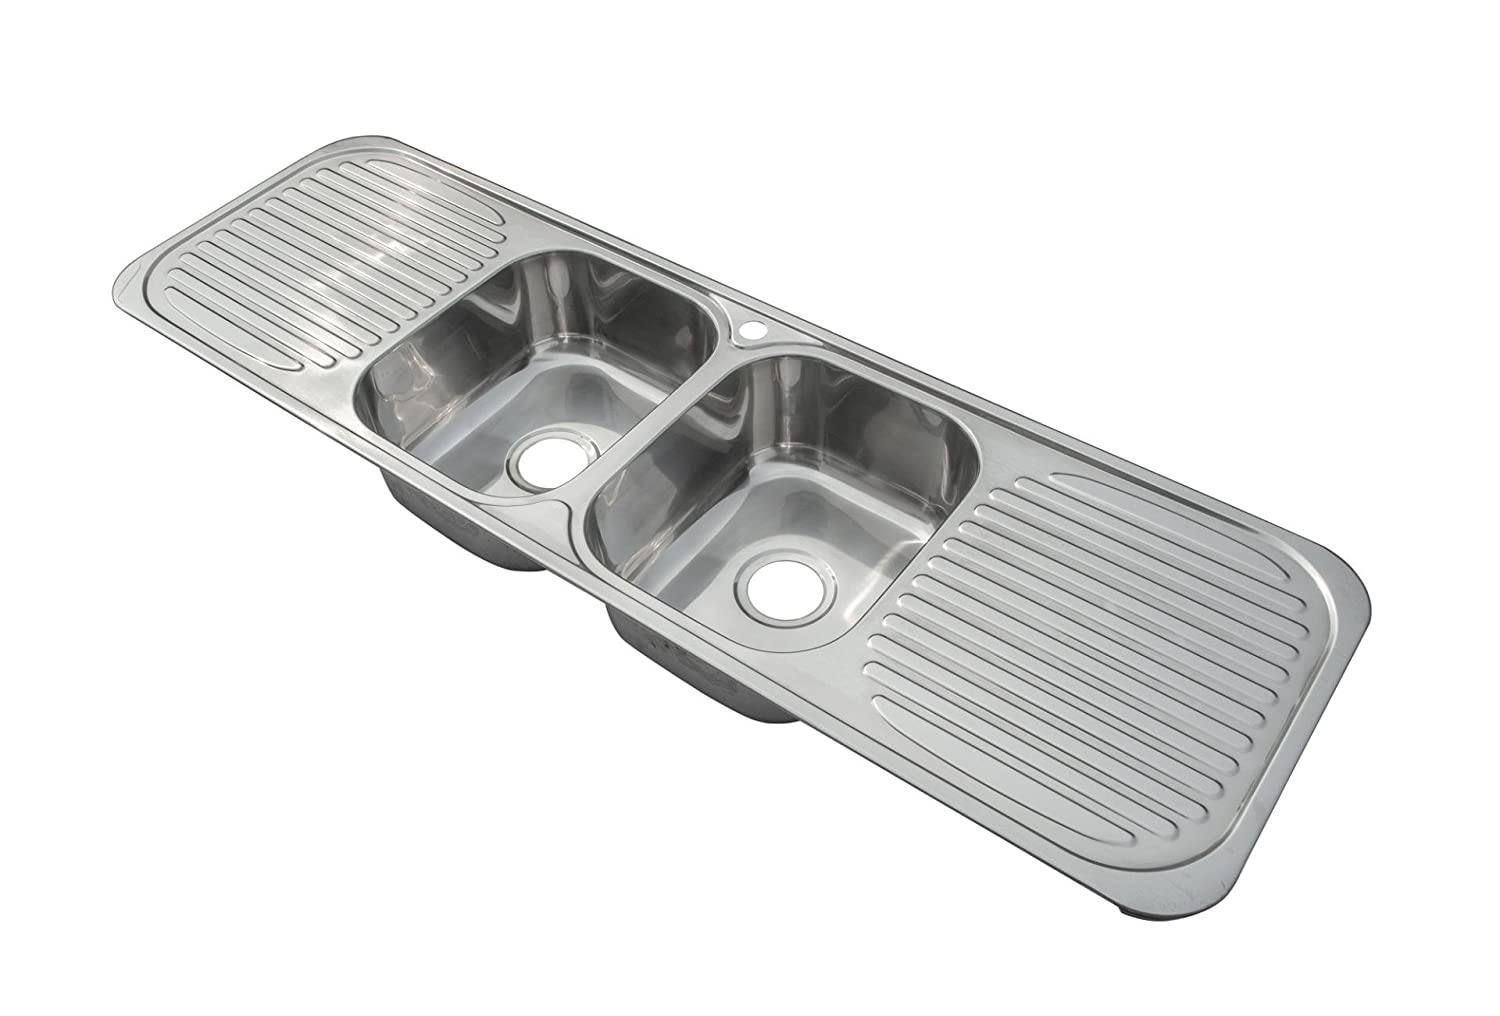 Kitchen Sinks Online Purchase. small round kitchen sinks purchase ...